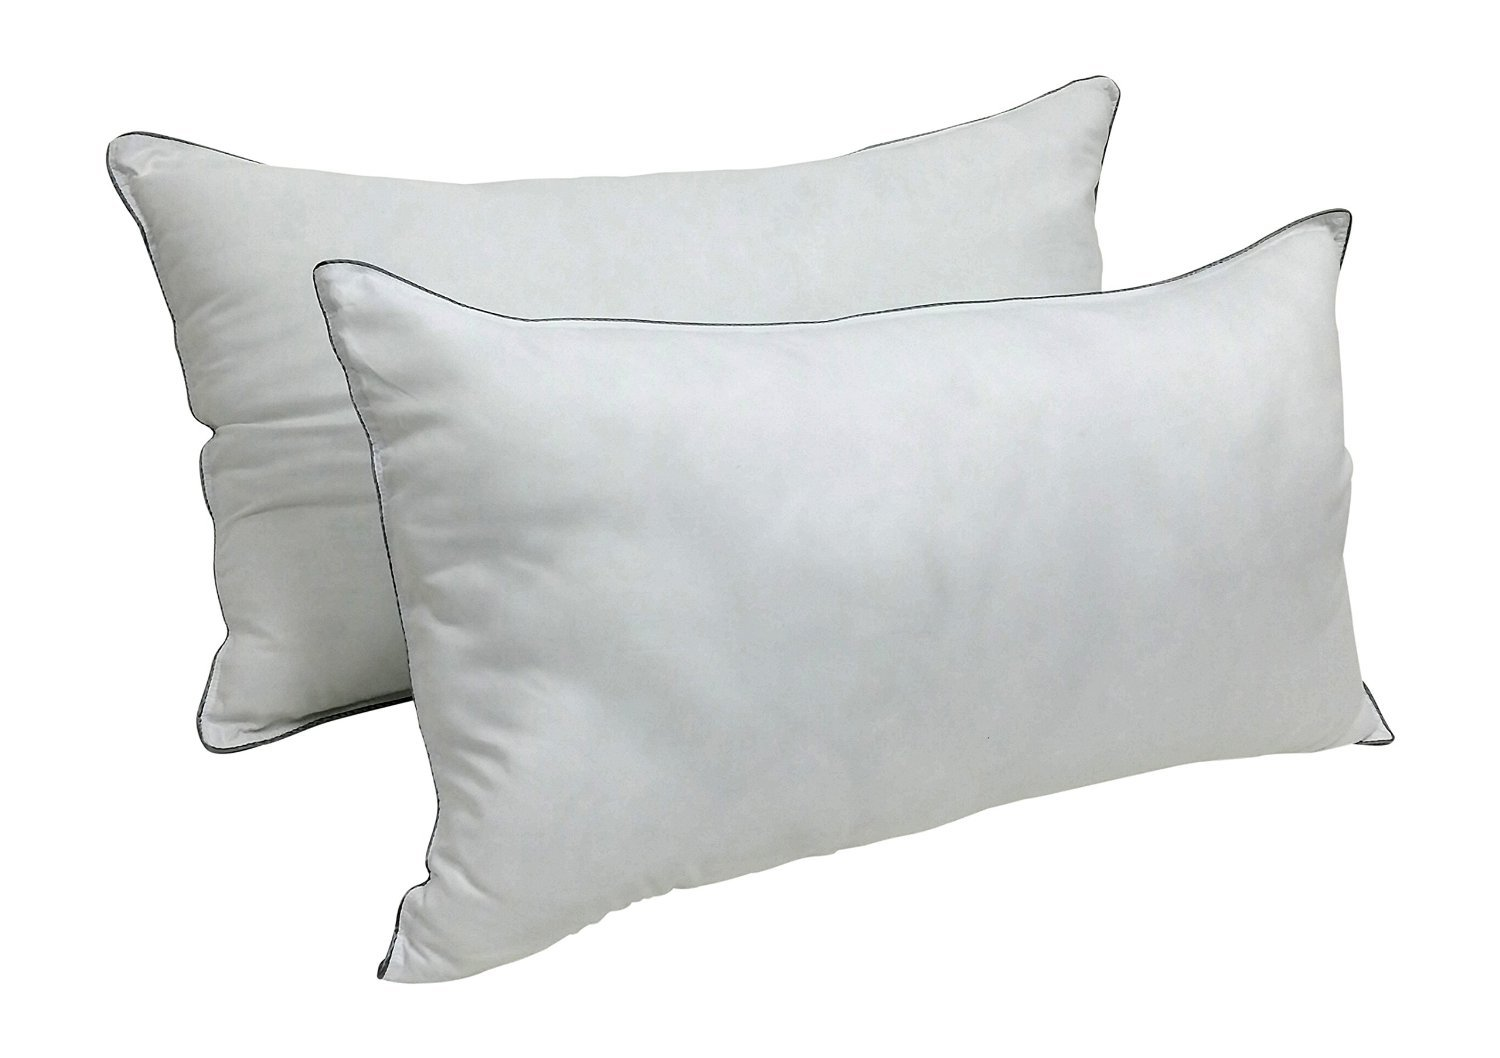 Set of 2 - Dream Deluxe - Ultimate Bed Pillows - Medium Density - Exclusively by Blowout Bedding RN# 142035 - Queen